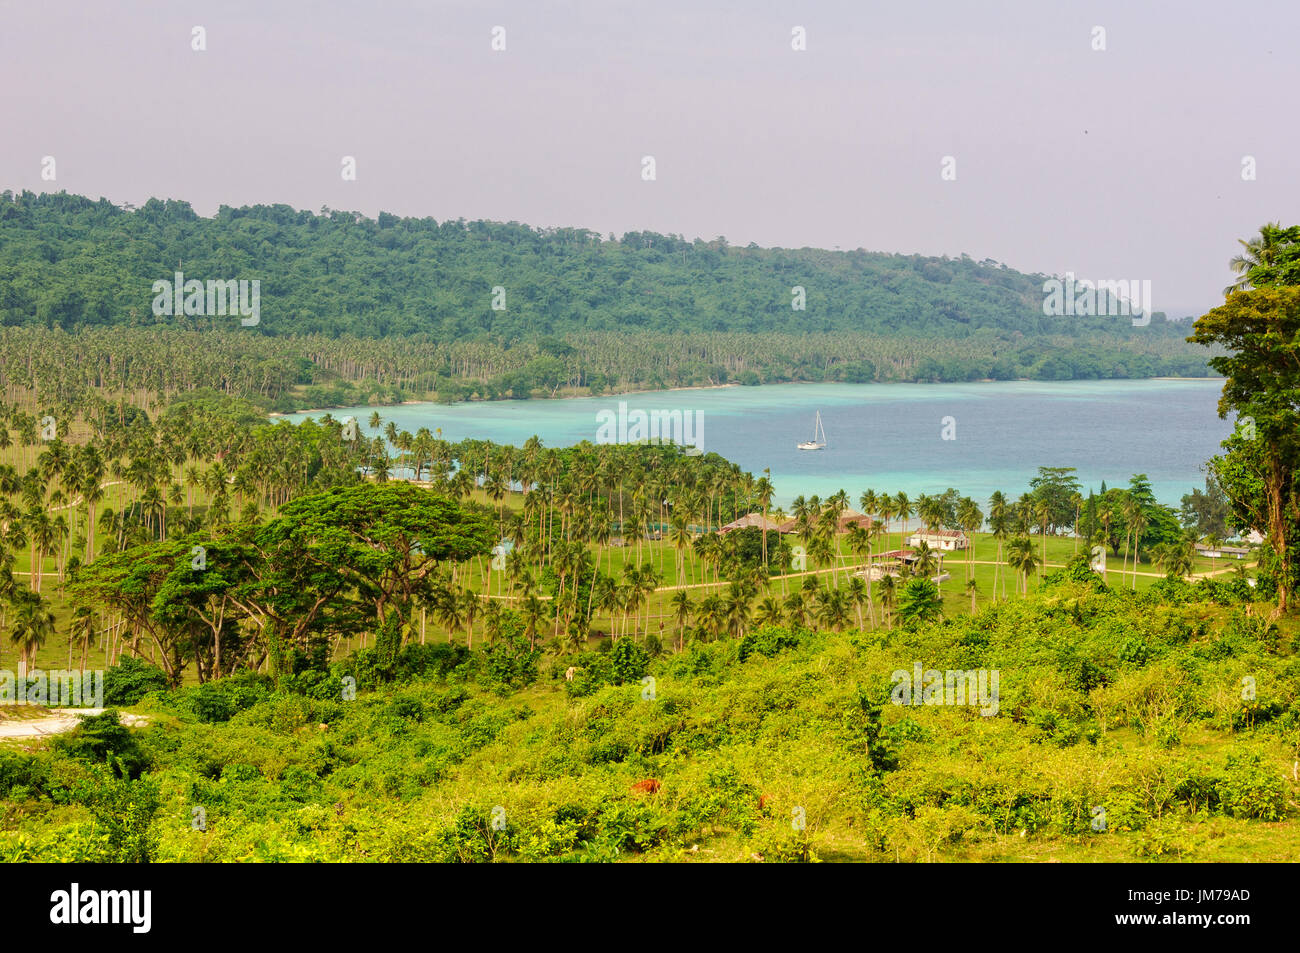 The sheltered Velit Bay is about a half-hour drive from Luganville on the east coast - Espiritu Santo, Vanuatu - Stock Image